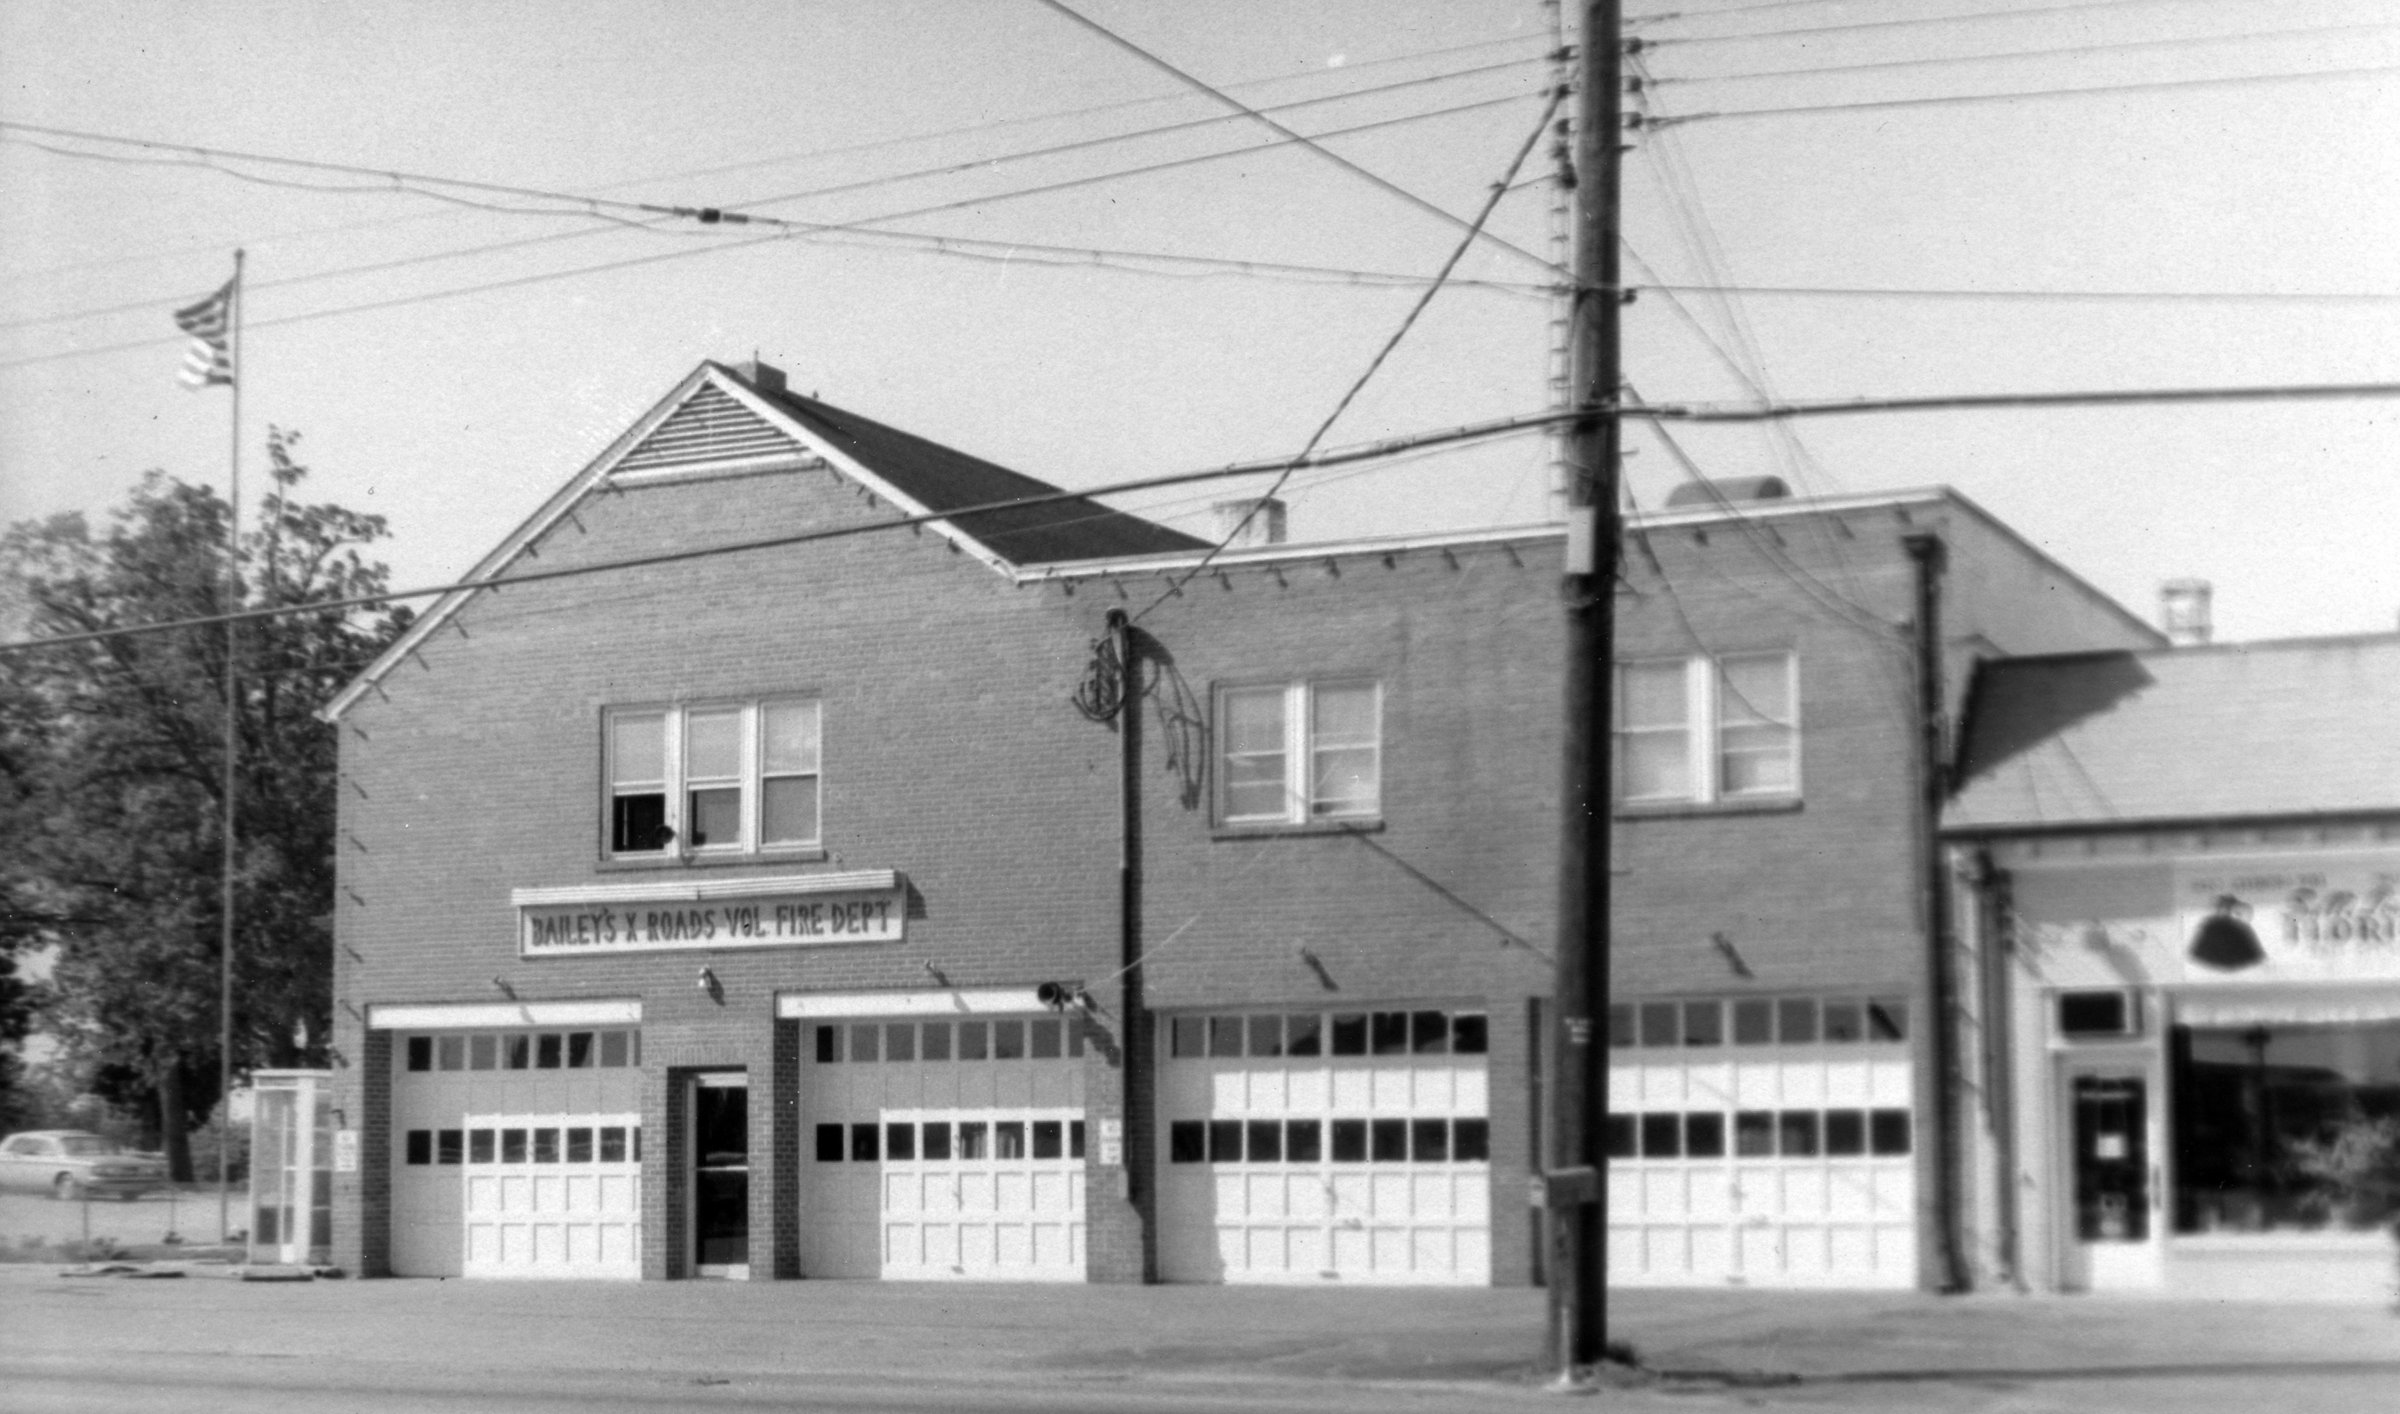 Bailey's Crossroads Volunteer Fire Department, 1964.